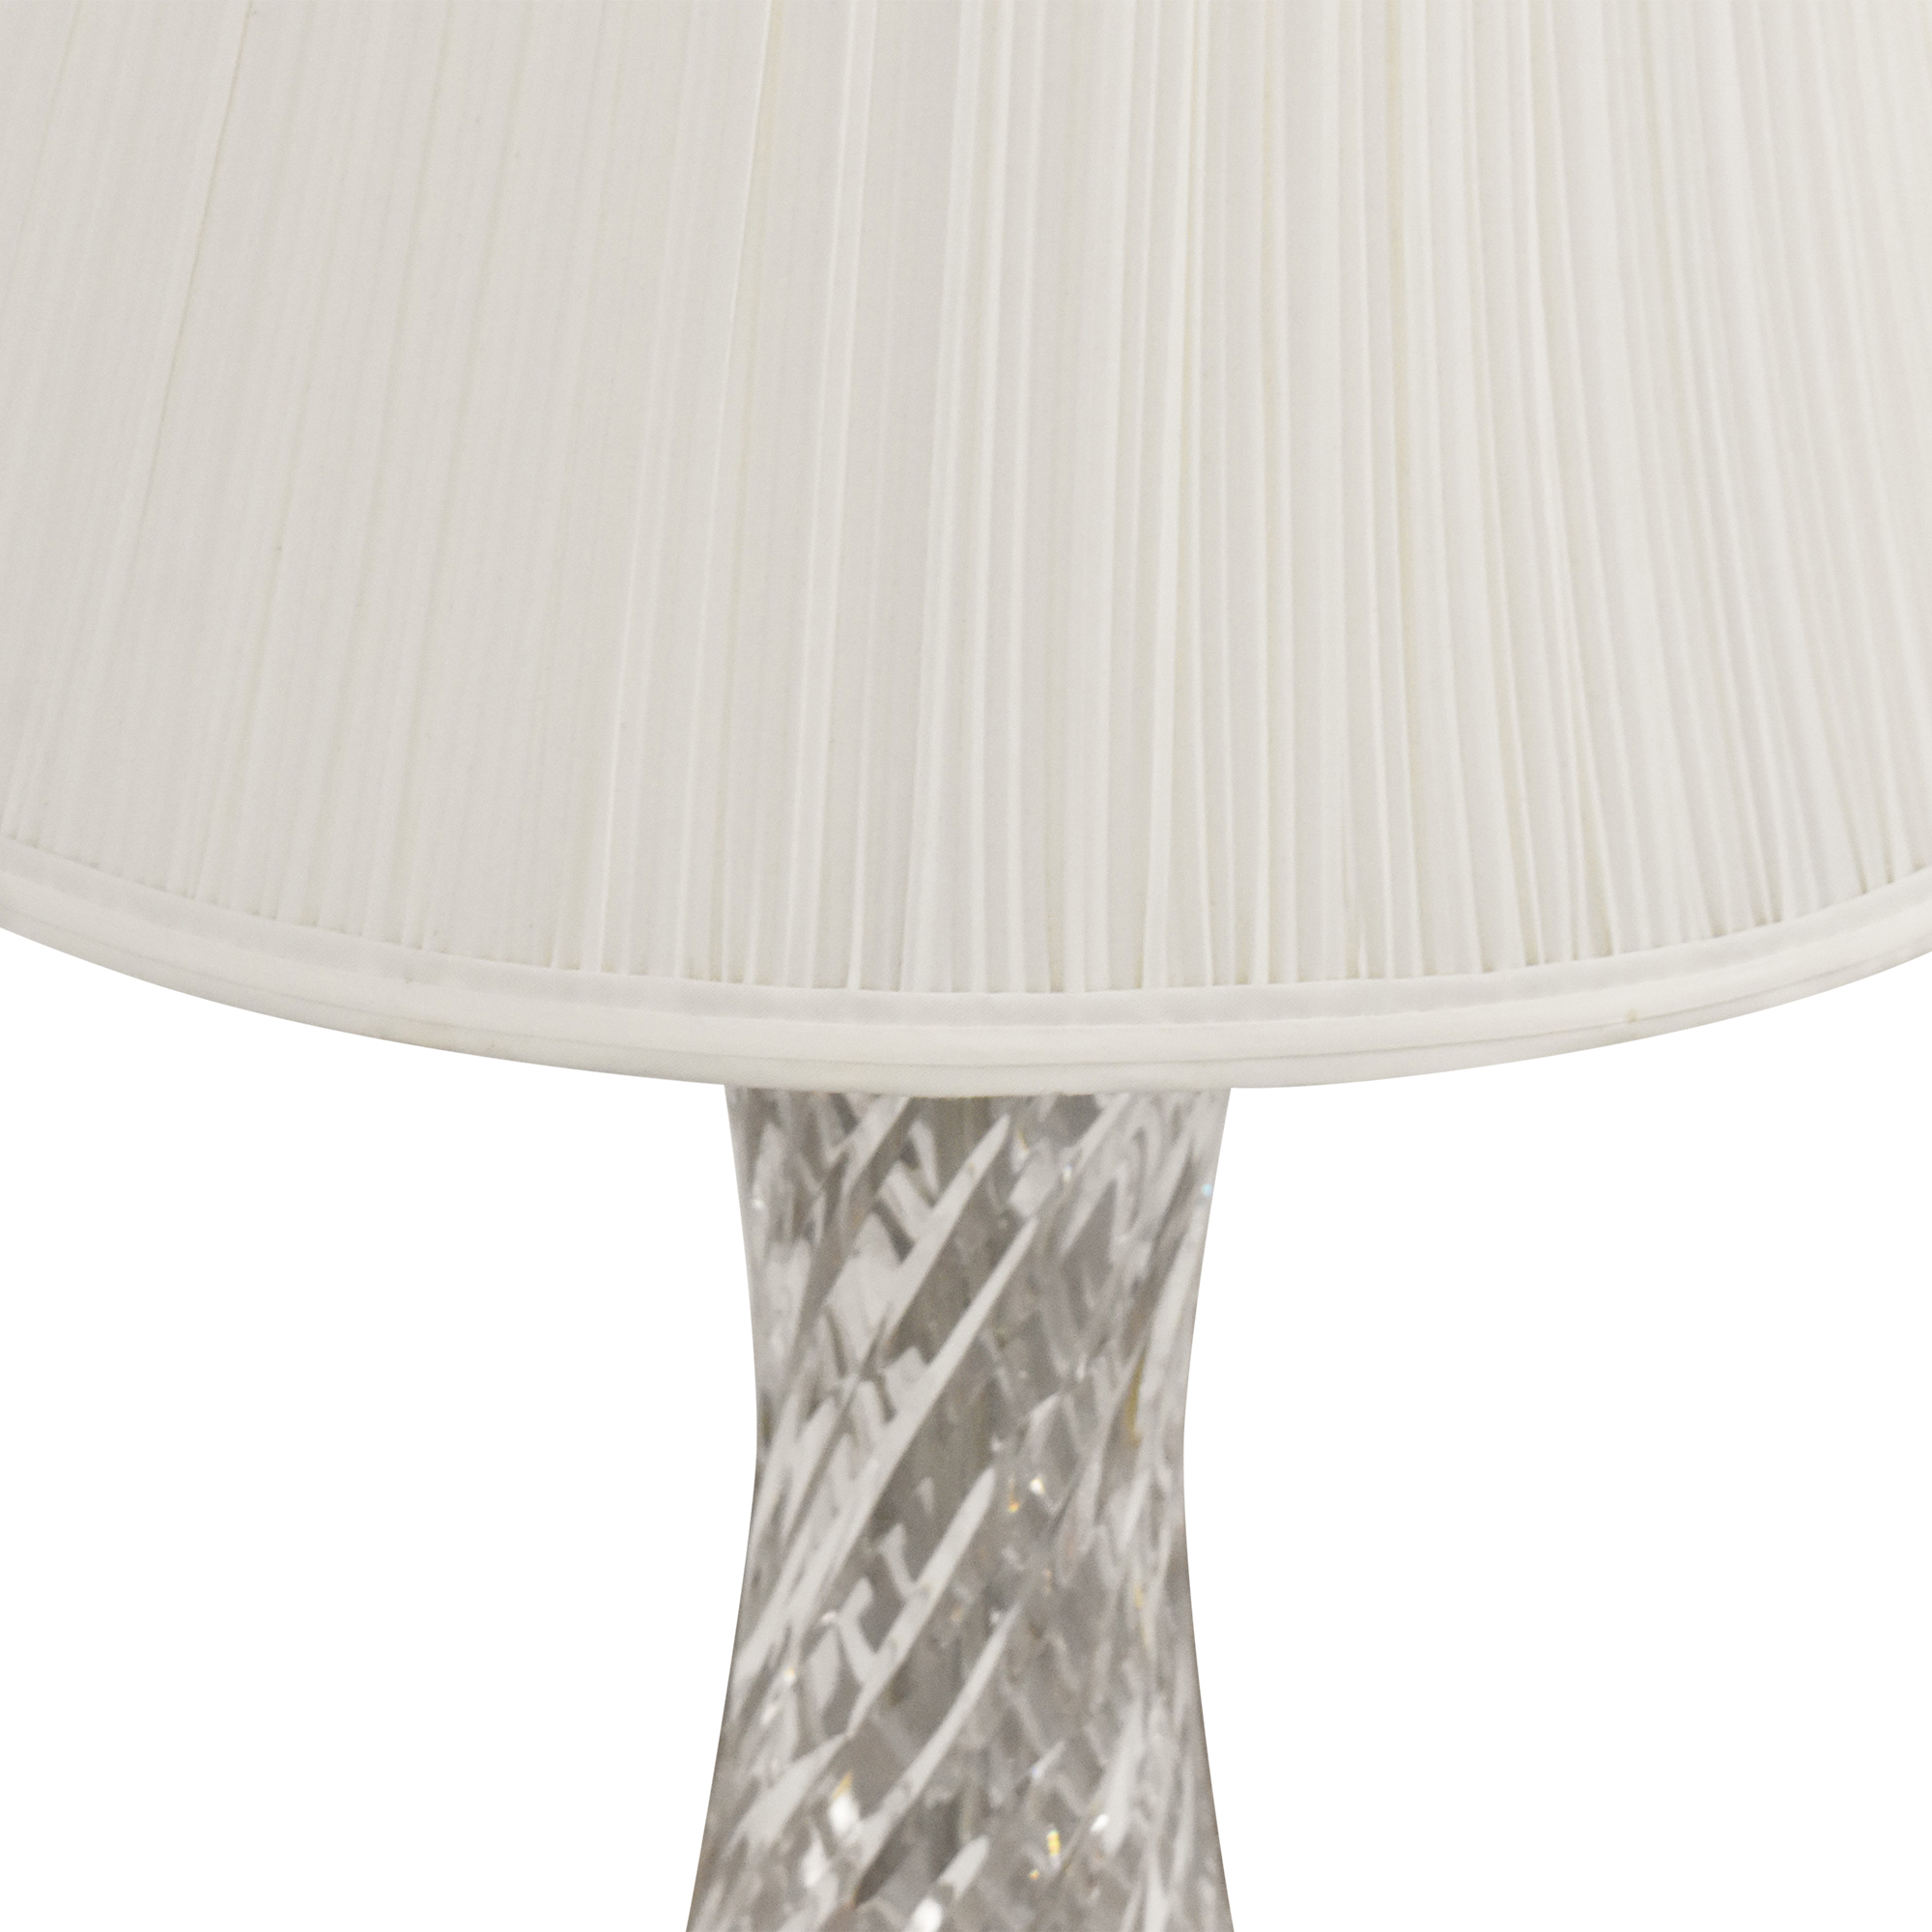 Waterford Waterford Table Lamps off white & gold